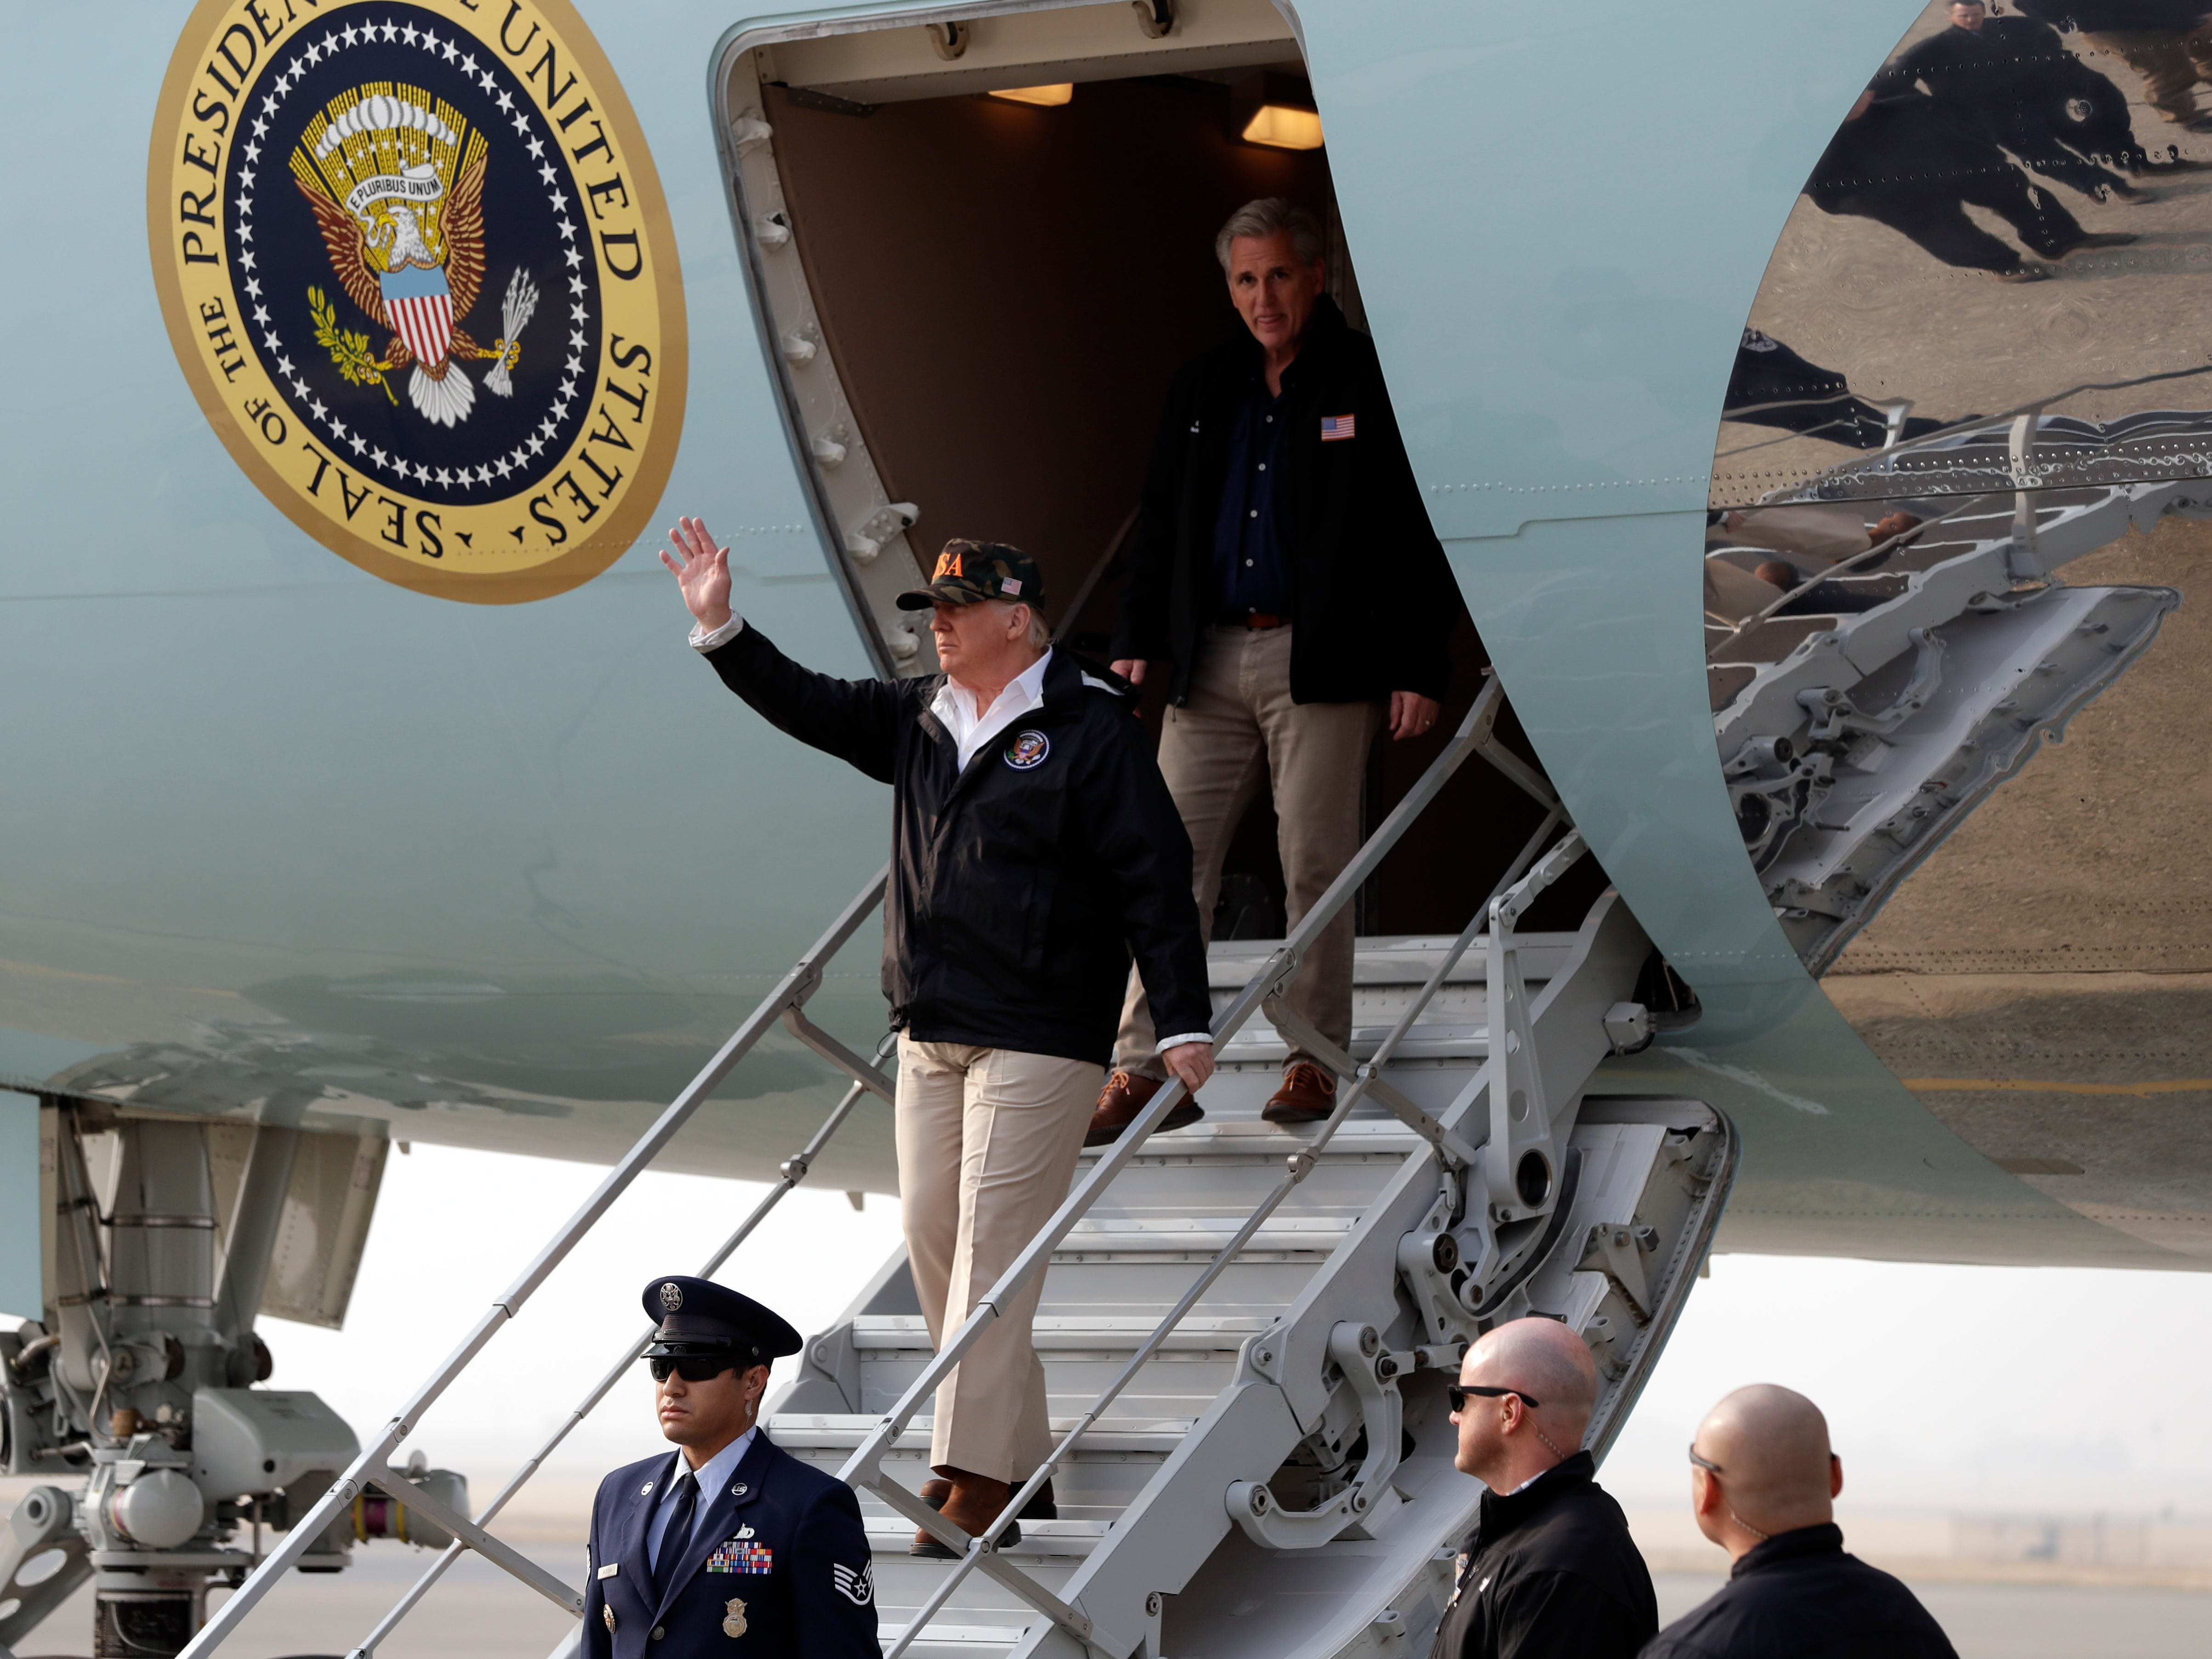 President Donald Trump waves as he arrives on Air Force One at Beale Air Force Base for a visit to areas impacted by the wildfires, Saturday, Nov. 17, 2018, at Beale Air Force Base, Calif.  He is followed by House Majority Leader Kevin McCarthy of Calif. (AP Photo/Evan Vucci)